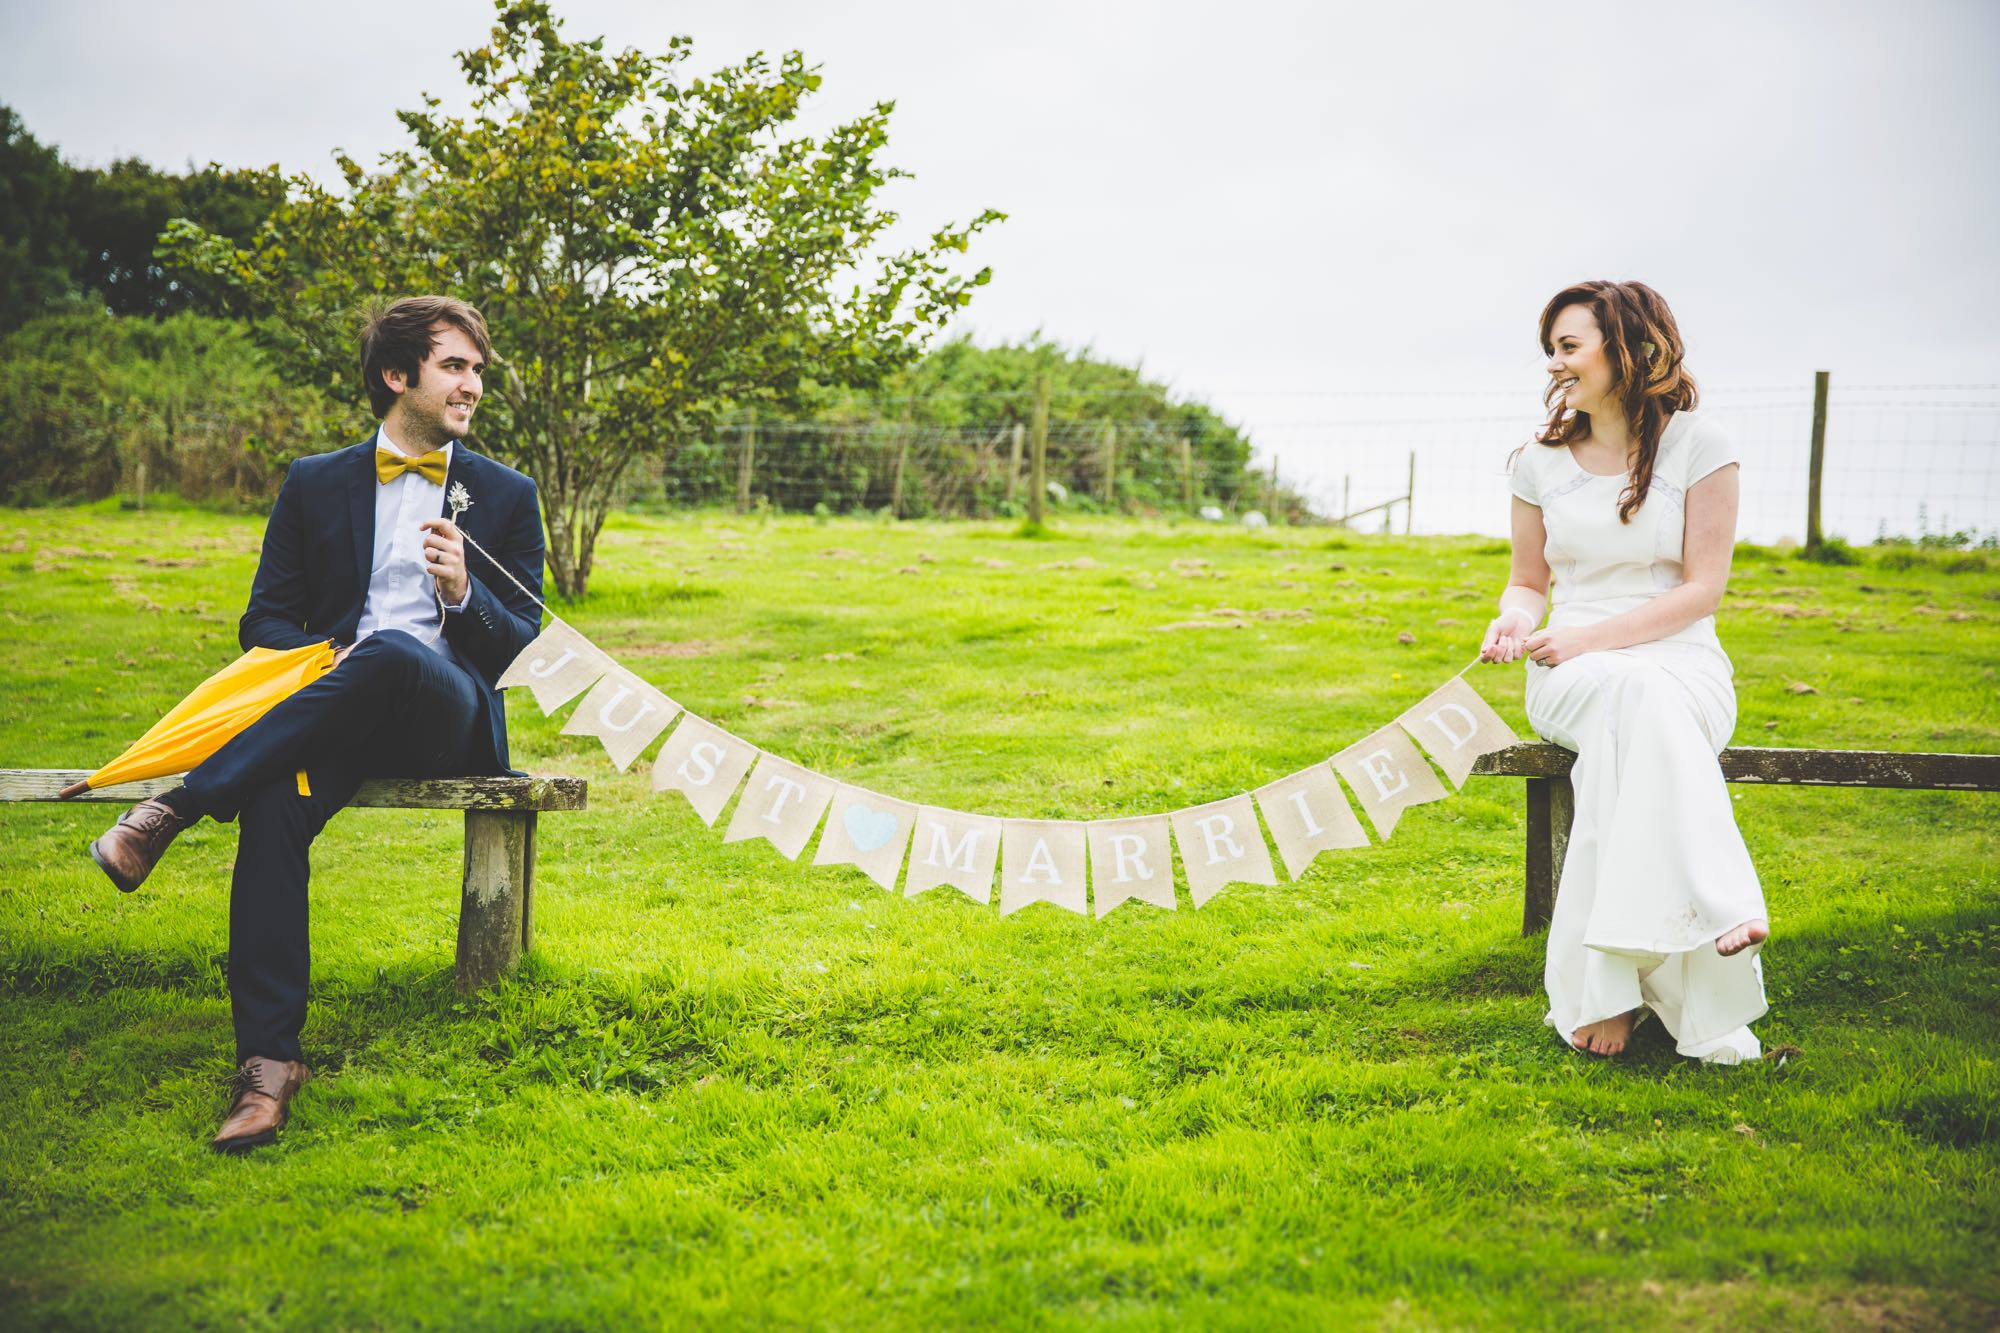 This image shows an elopement couple sitting at the viewing point with a